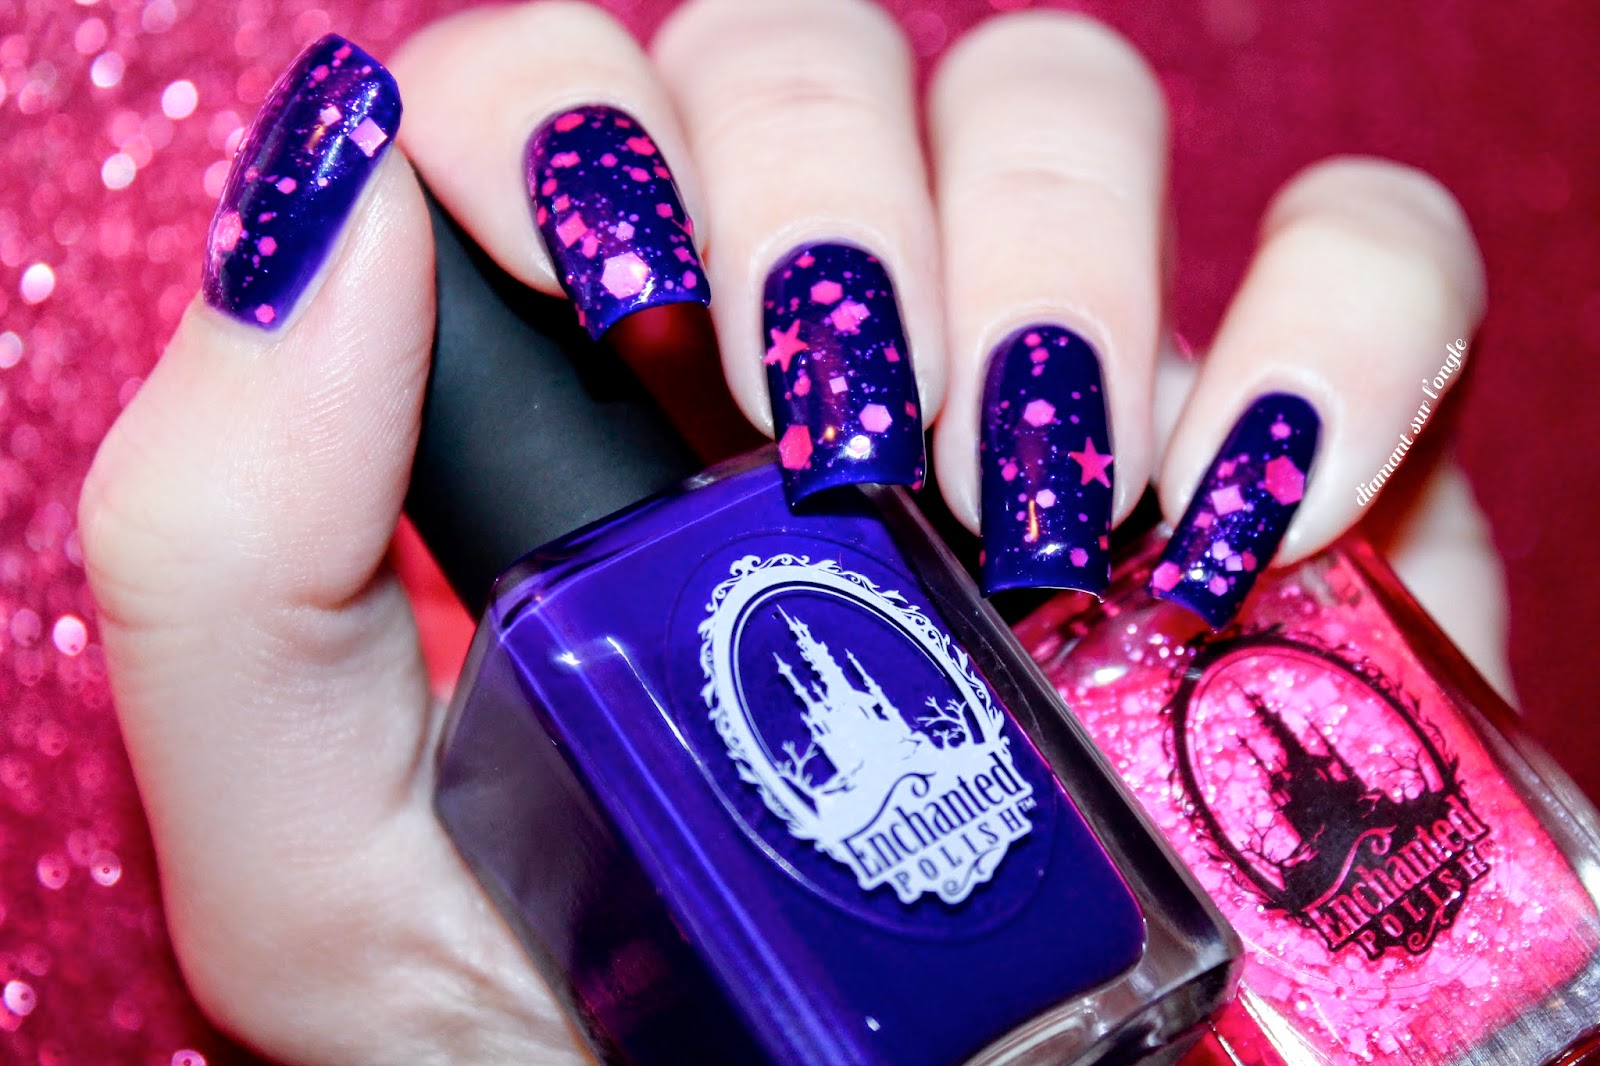 Regal and Life in Plastic, it's Fantastic from Enchanted Polish